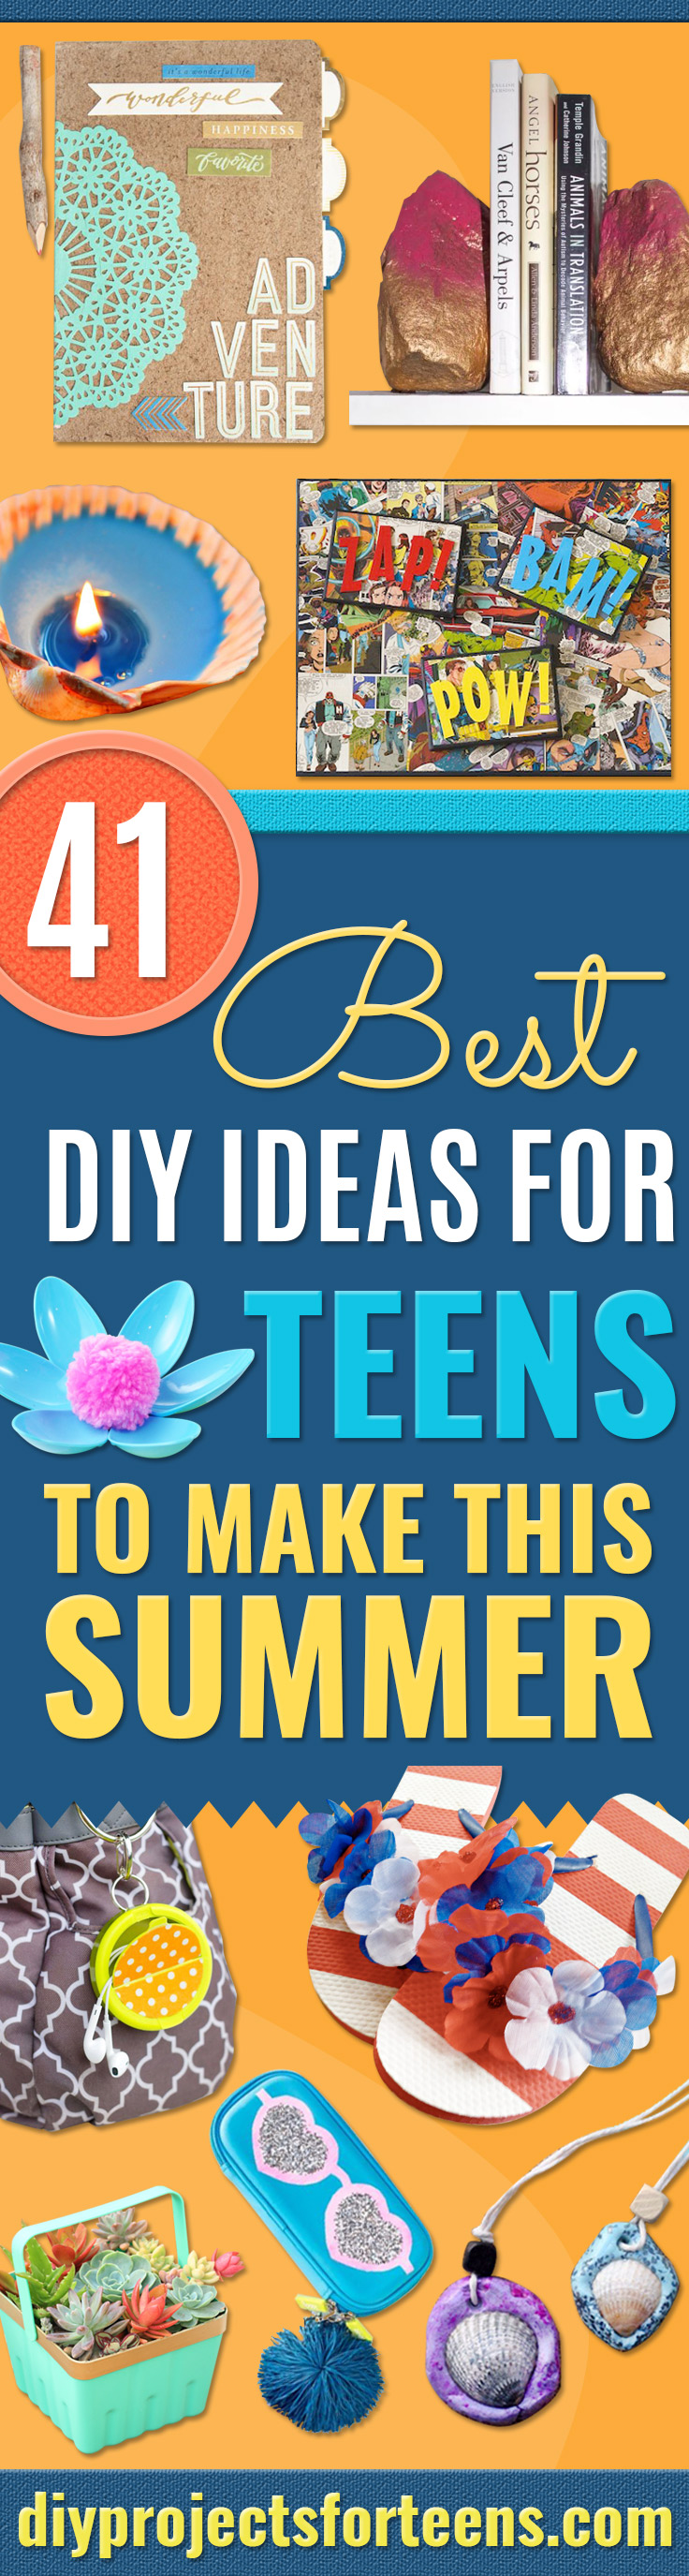 Best DIY Ideas for Teens To Make This Summer - Fun and Easy Crafts, Room Decor, Toys and Craft Projects to Make And Sell - Cool Gifts for Friends, Awesome Things To Do When You Are Bored - Teenagers - Boys and Girls Love Making These Creative Projects With Step by Step Tutorials and Instructions http://diyprojectsforteens.com/best-ideas-teens-summer